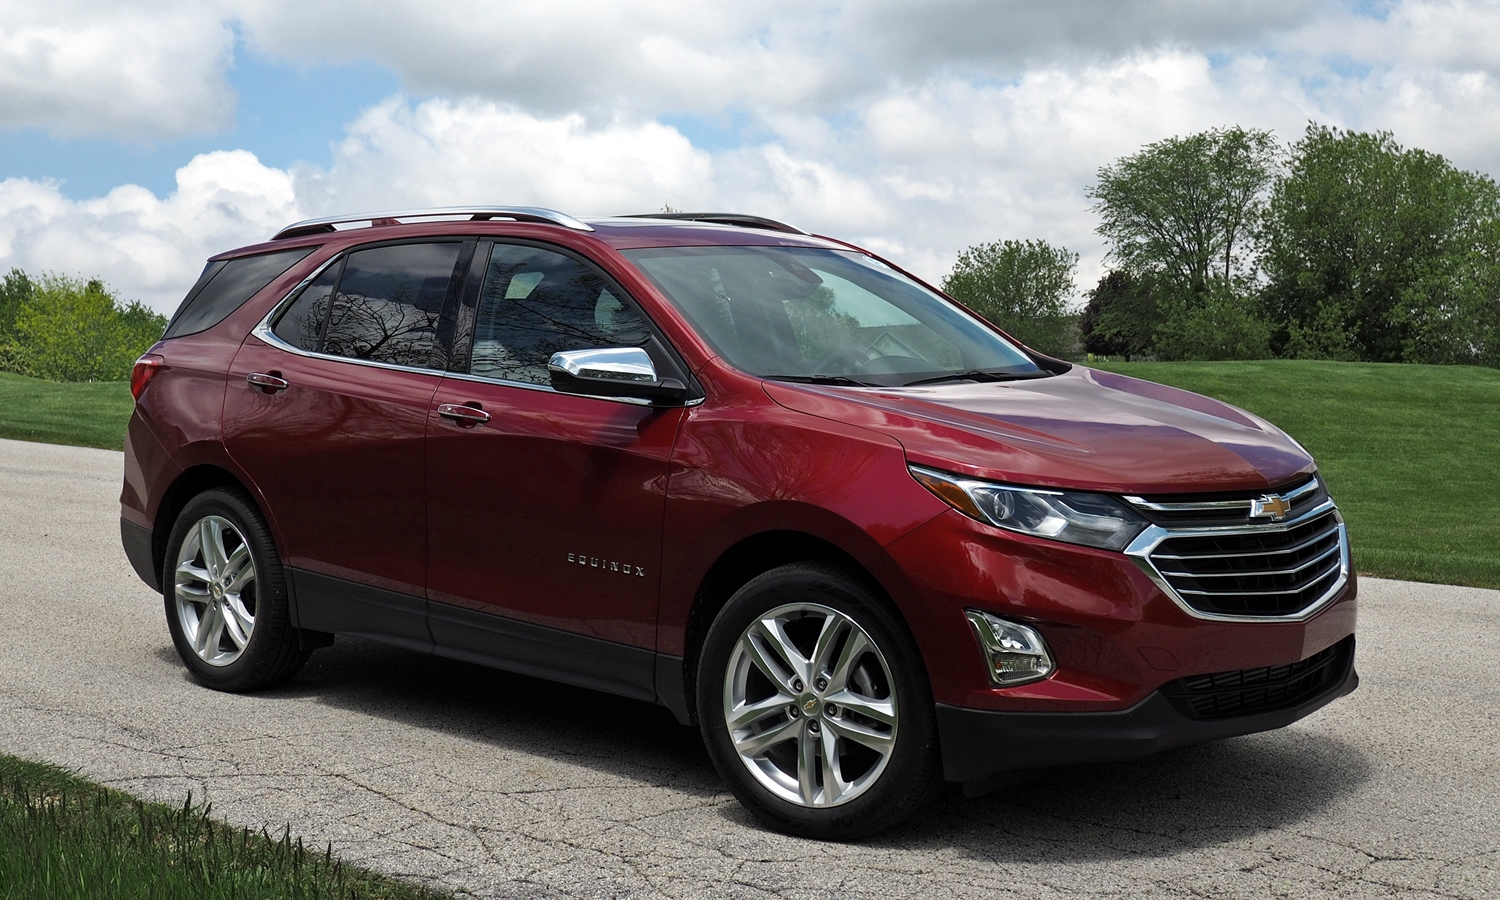 GMC Terrain Photos: 2018 Chevrolet Equinox front quarter view